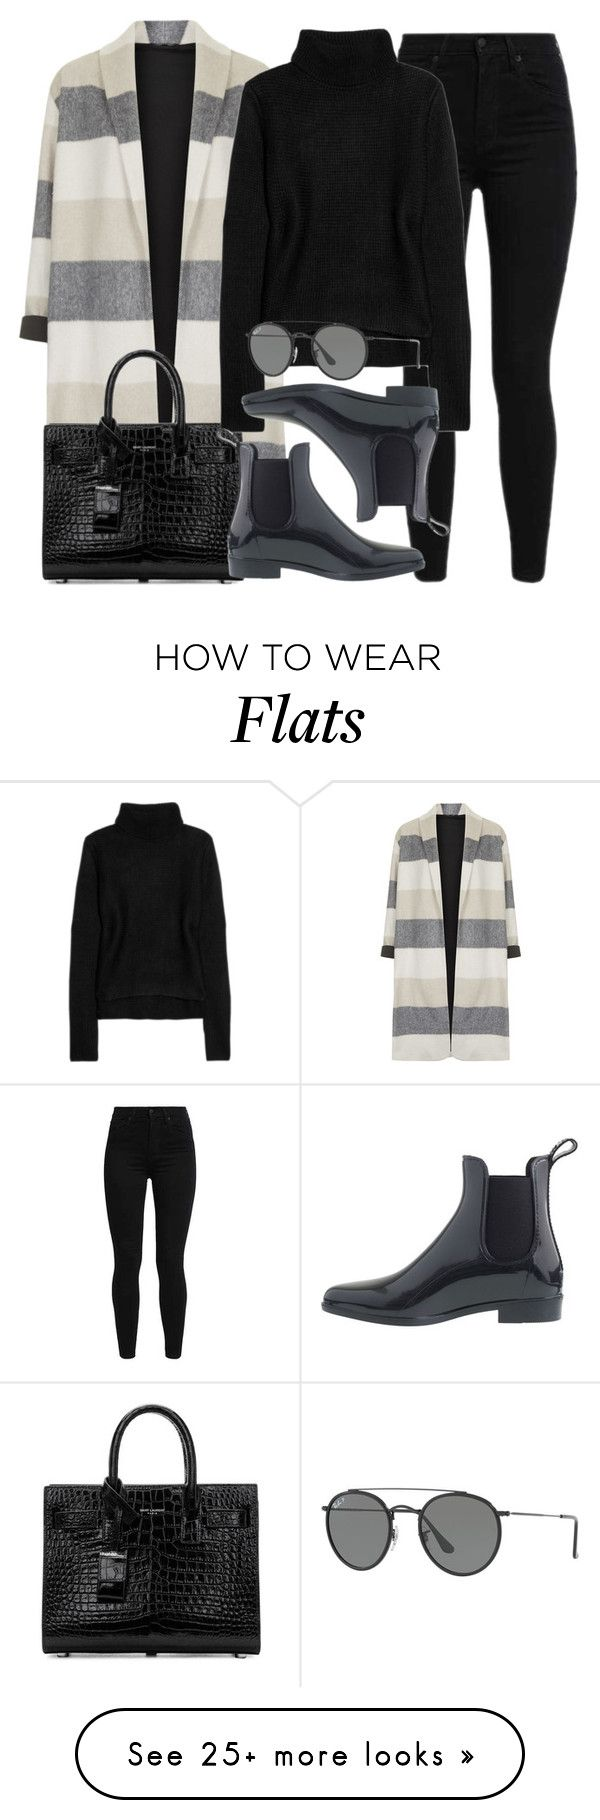 """Sin título #14495"" by vany-alvarado on Polyvore featuring Topshop, Levi's, Yves Saint Laurent, T By Alexander Wang, J.Crew and Ray-Ban"